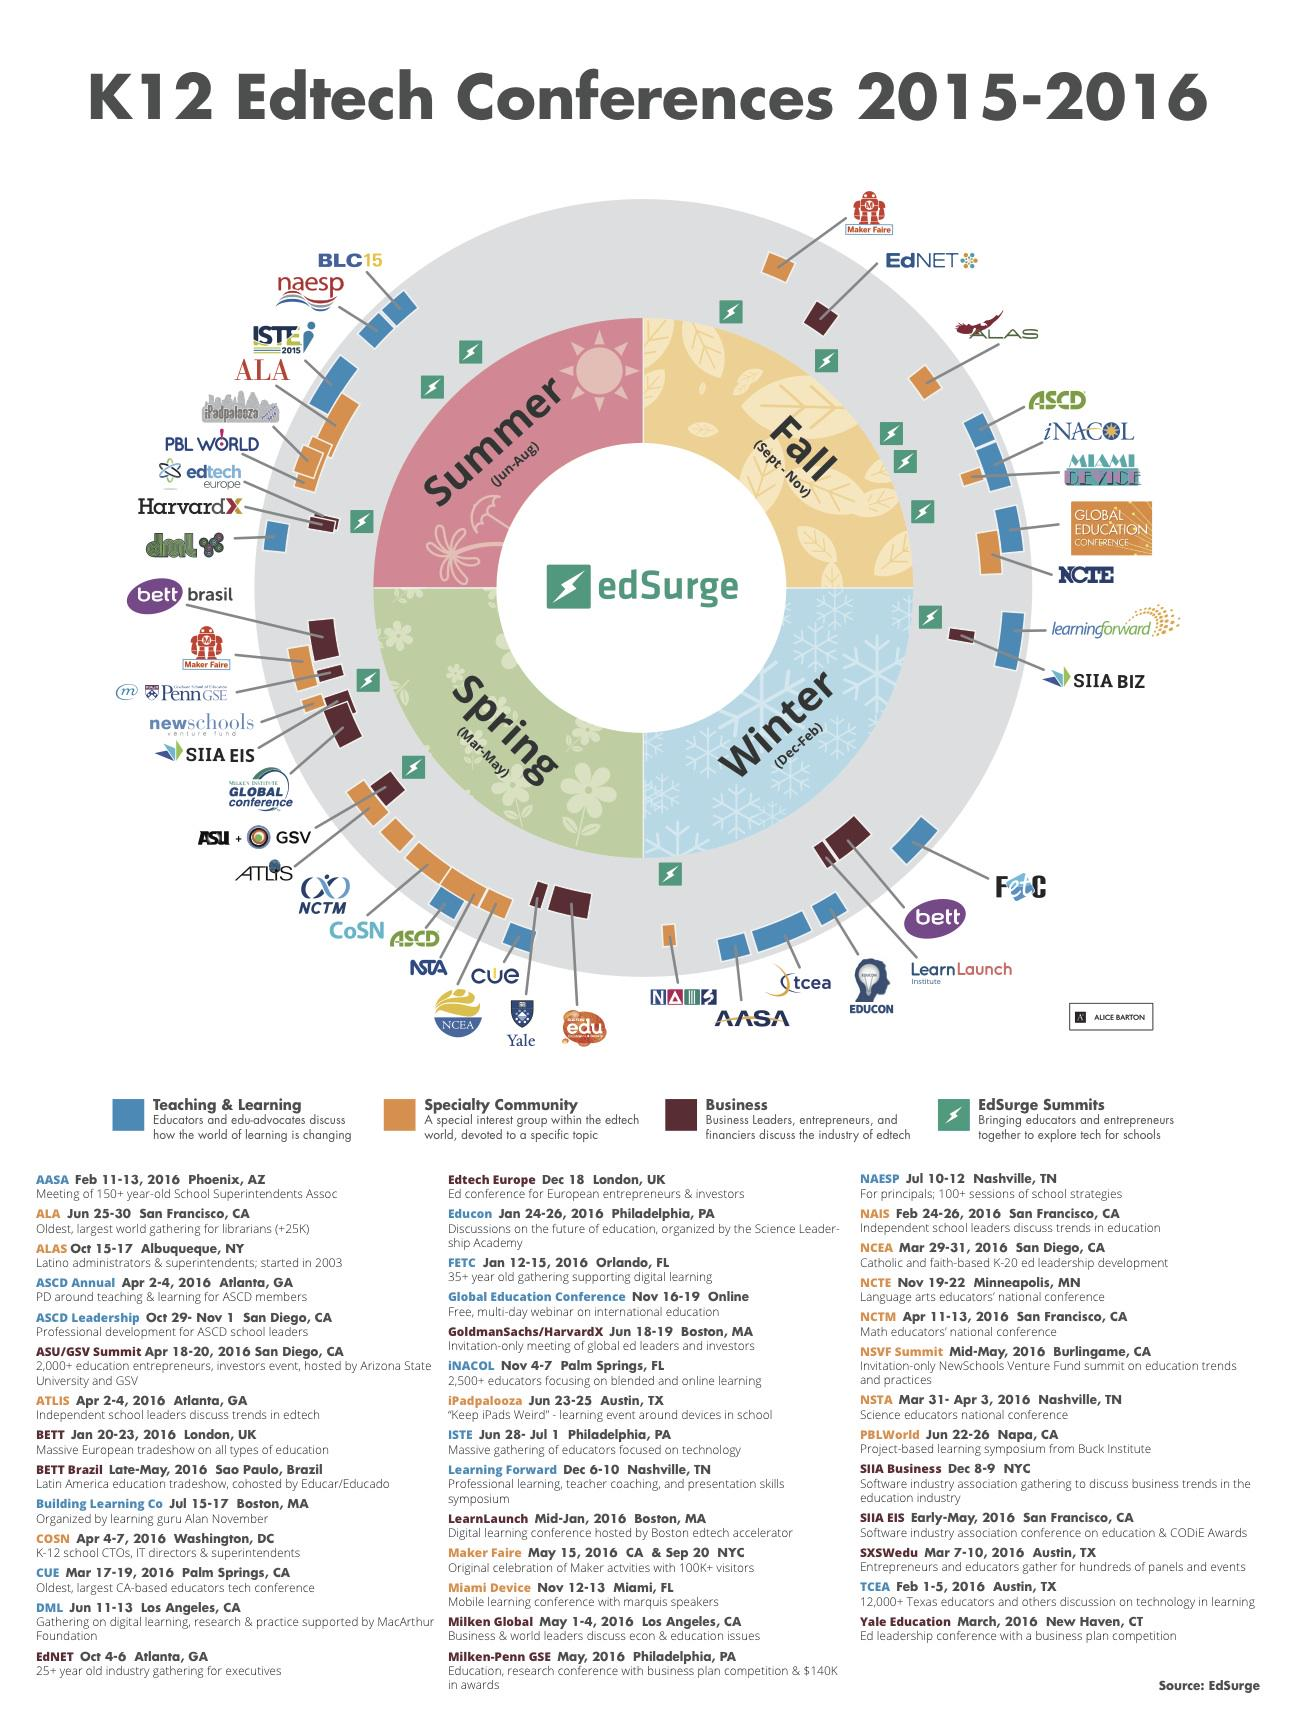 RT @ScottKinkoph: RT @EdSurge: What #edtech conferences will you go to in 2015? Keep track here! http://t.co/xvkaPYvLIM #ohedchat